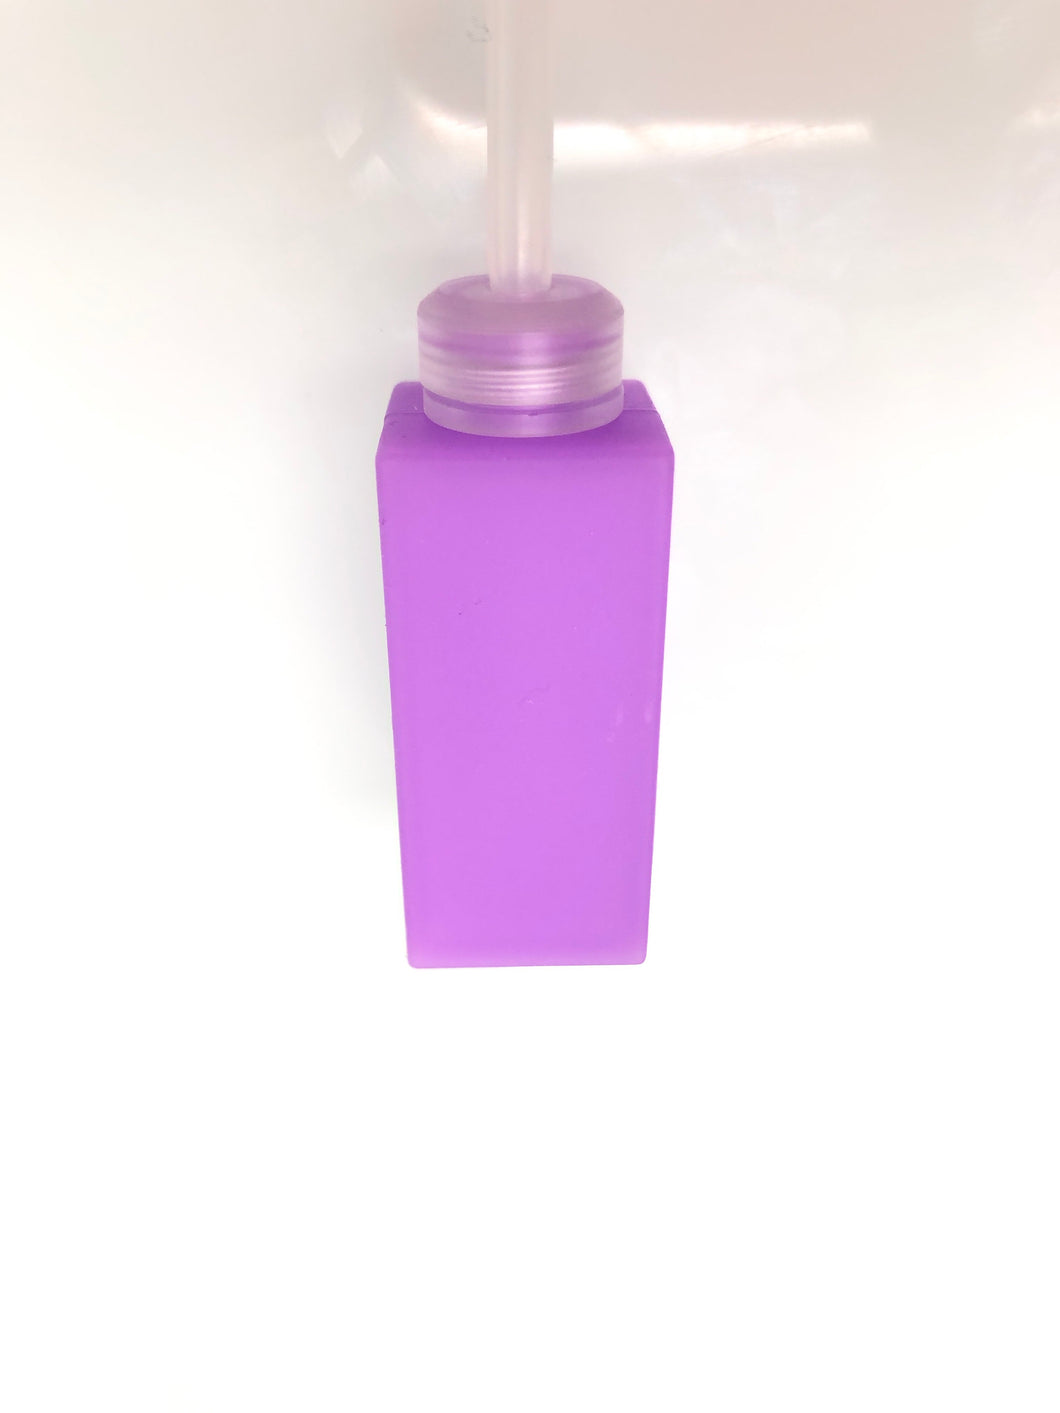 Purple Square'd bottle clear cap